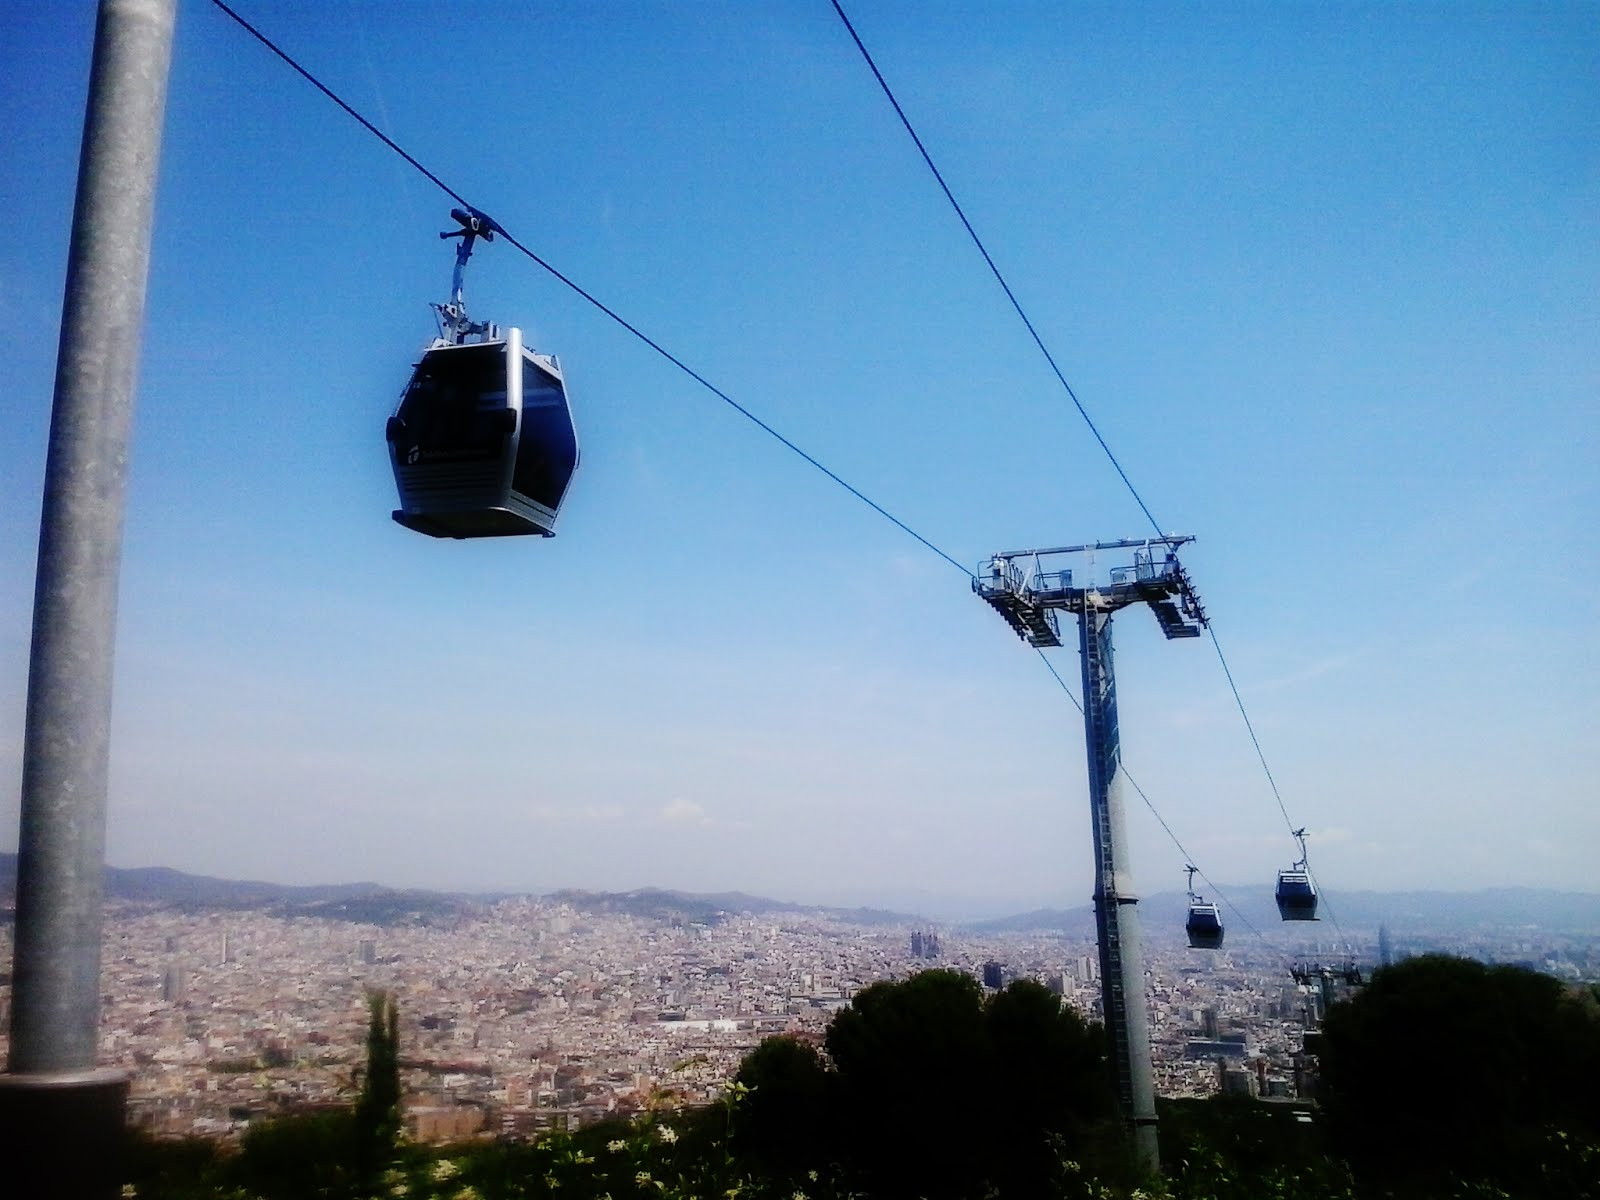 From the metro station Paral.lel, you can take the funicular up to Montjuic overlooking Barcelona city!